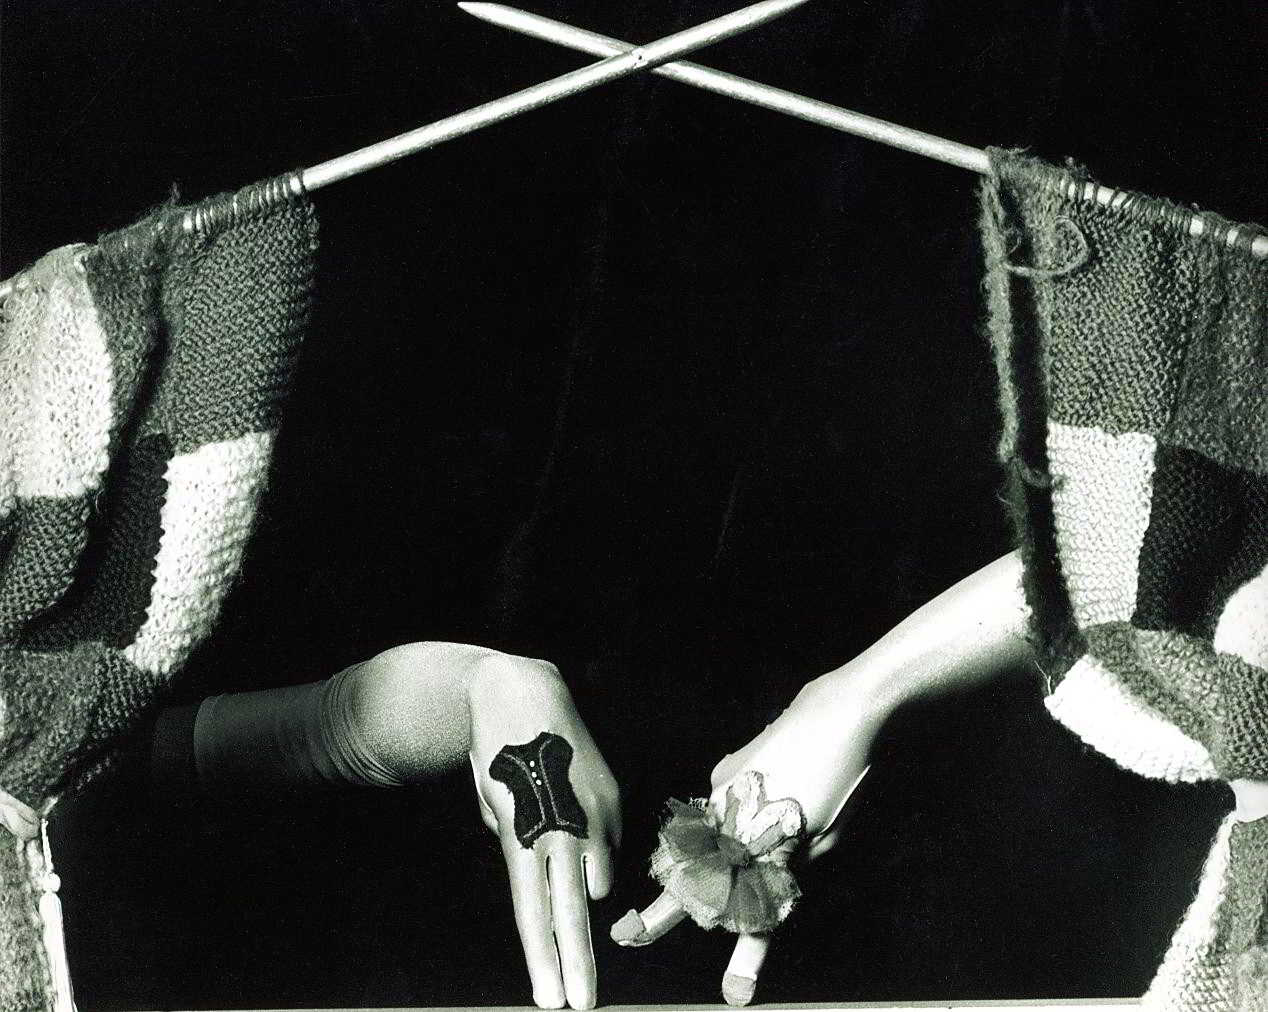 curtain of knitting on needles with dressed fingers dancing